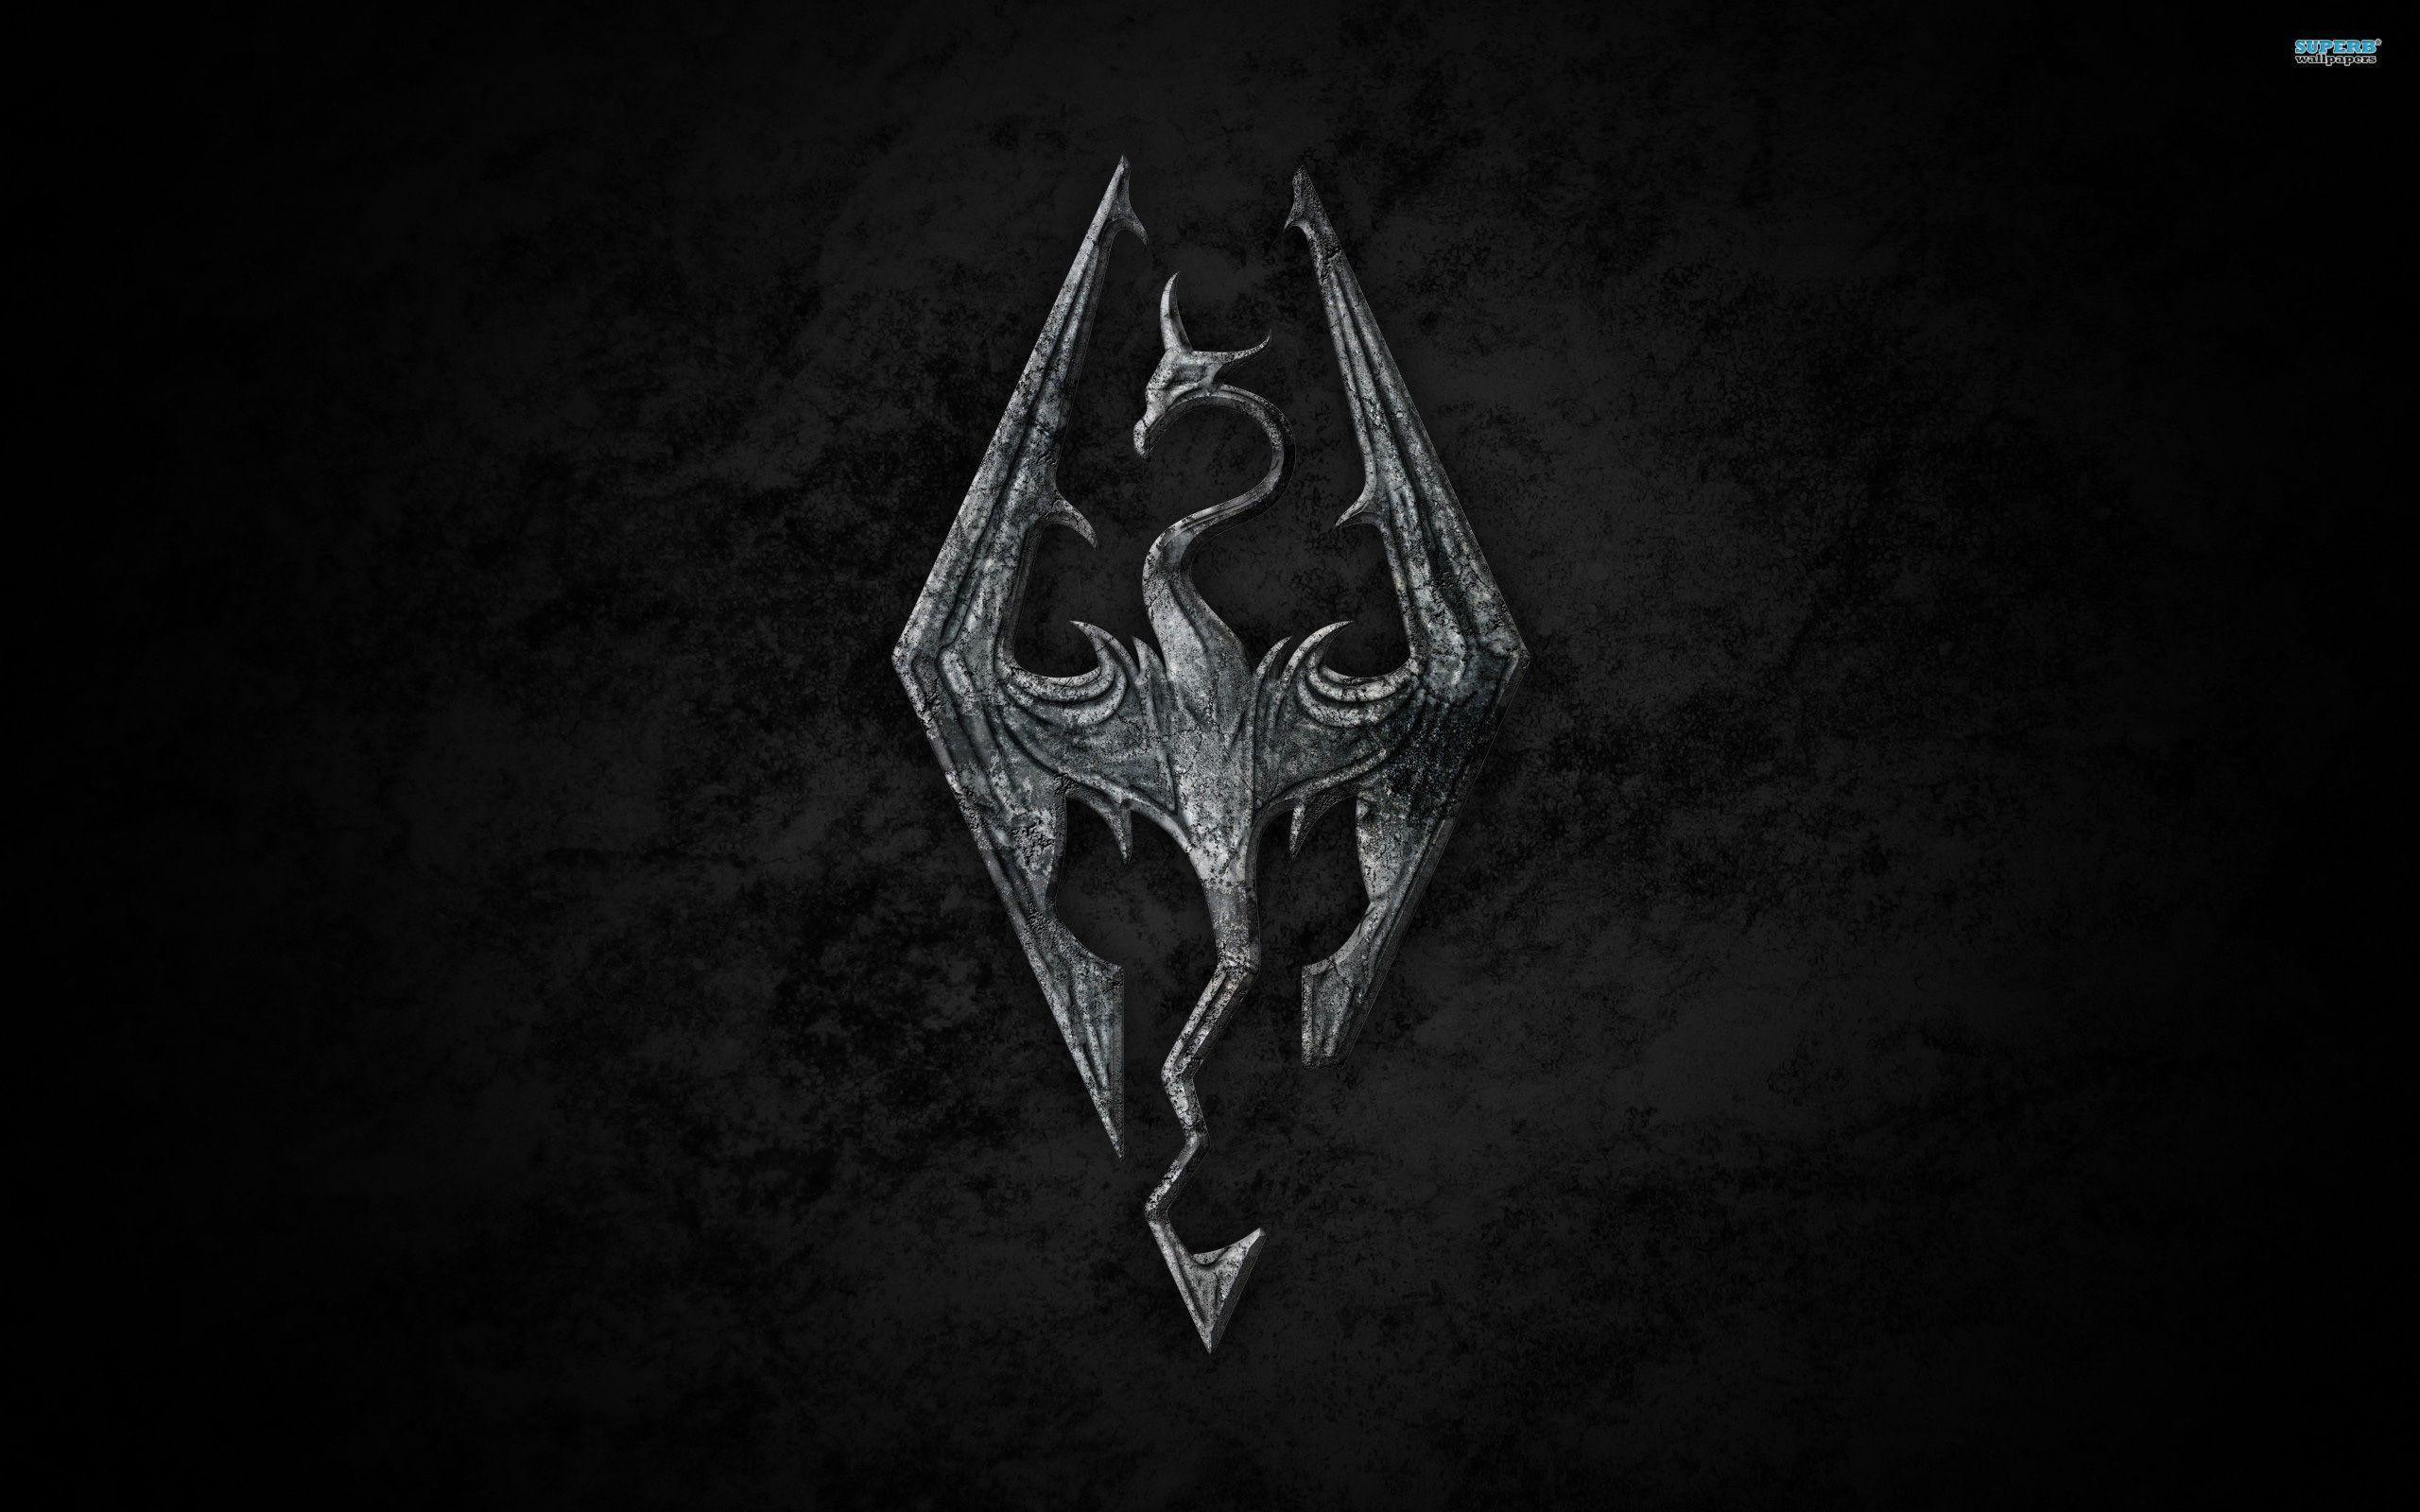 2560x1600 Skyrim Wallpaper 1600x900 : Wallpapers Skyrim Game The Elder .